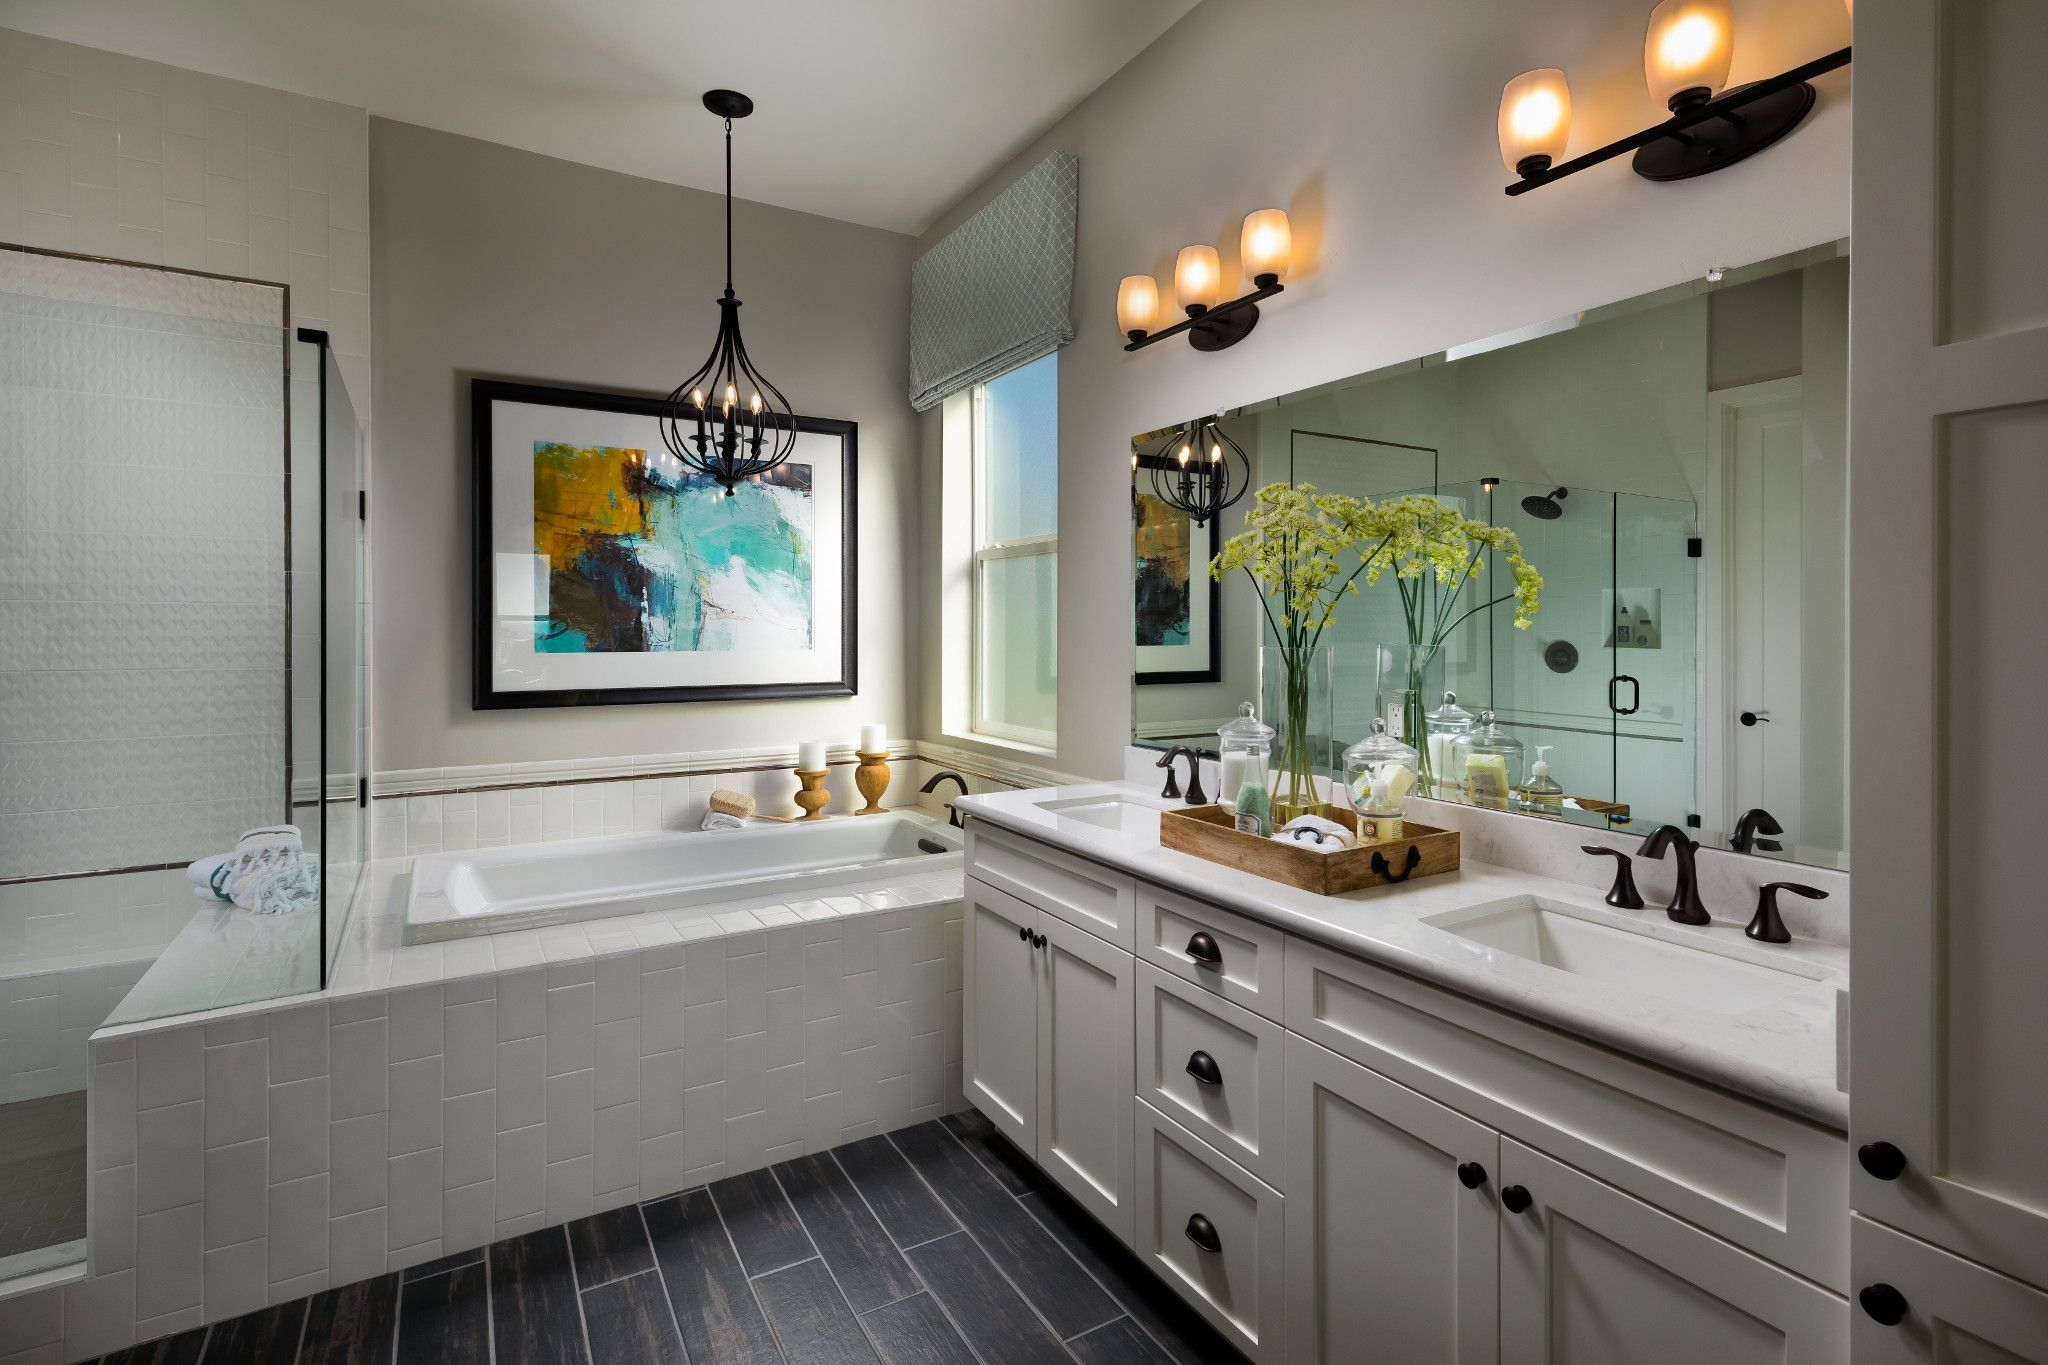 Bathroom featured in the Ventana By Shea Homes - Trilogy in San Luis Obispo, CA